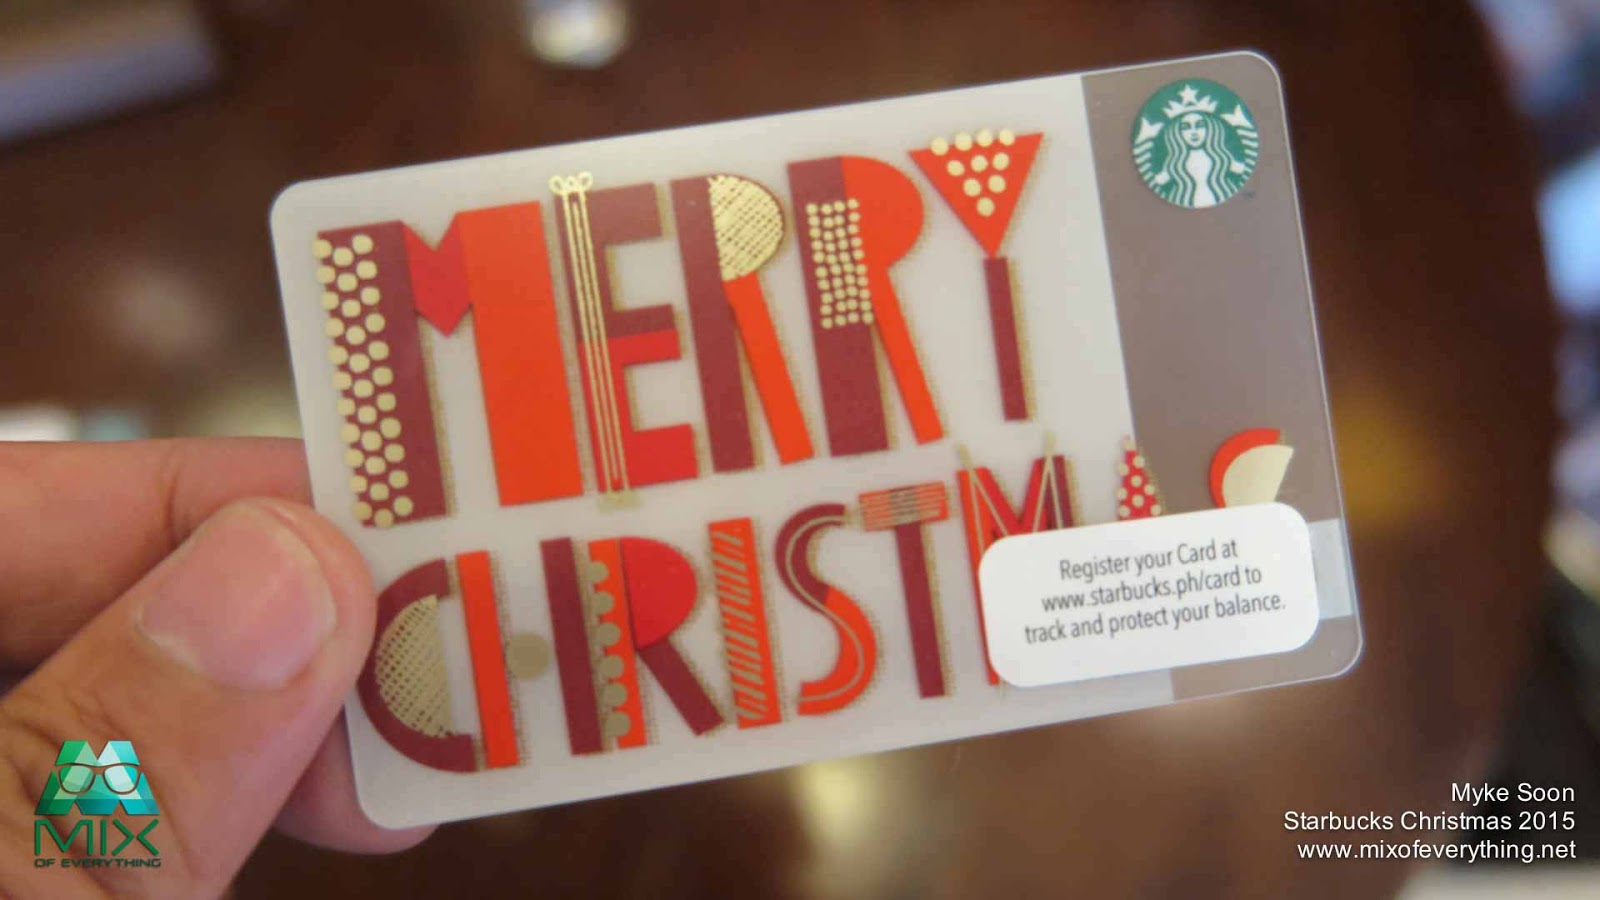 more update on the cards new merchandise and planners soon check out this link starbucks christmas 2015 - Starbucks Merry Christmas